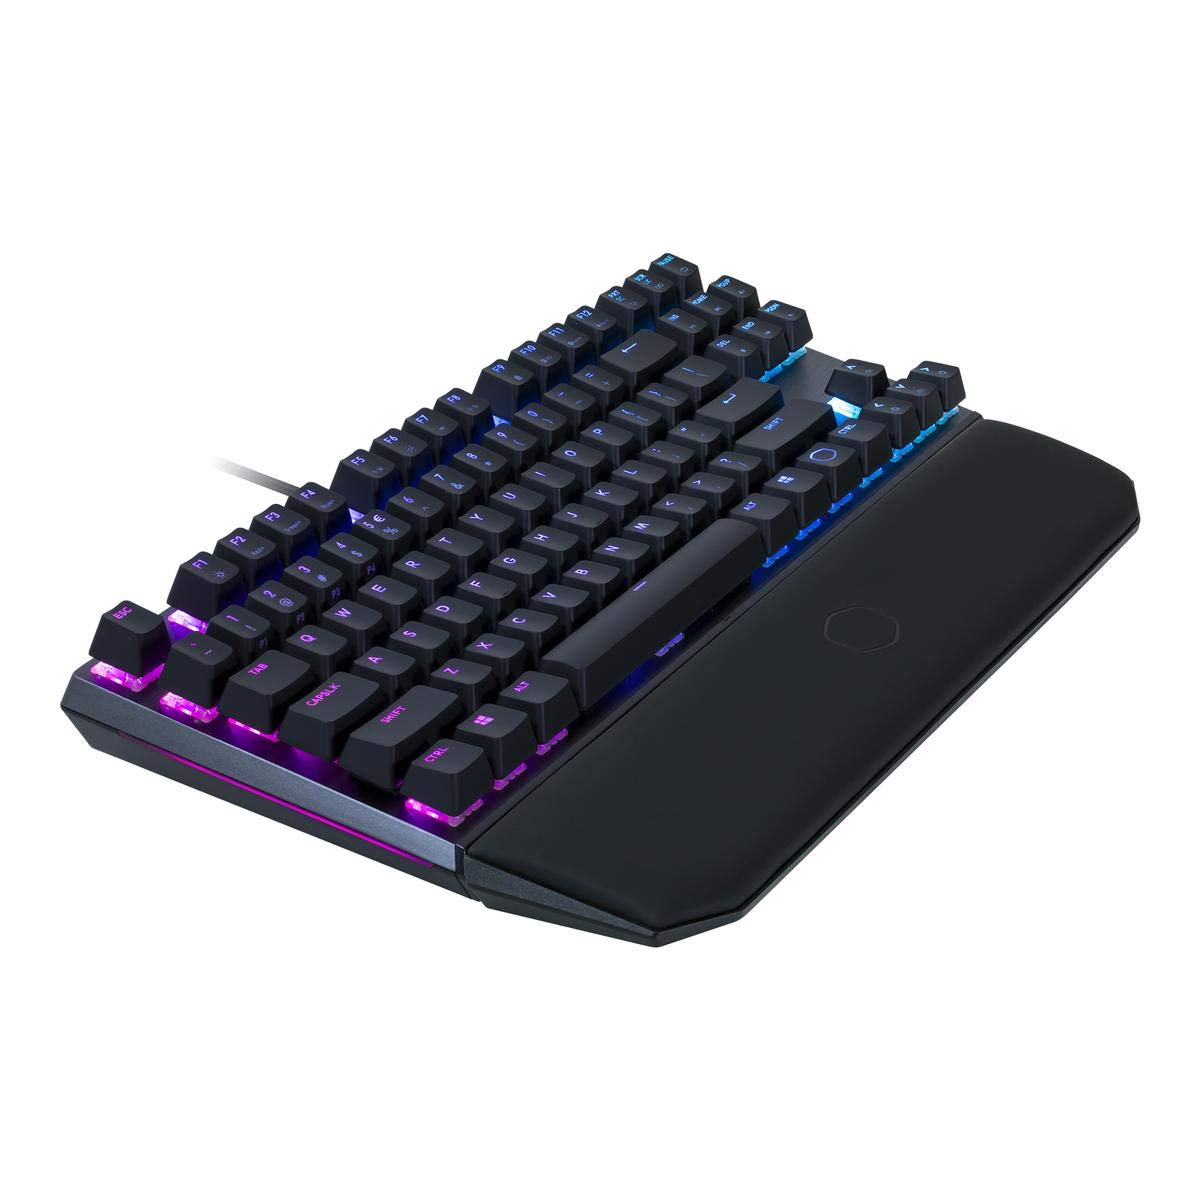 Cooler-Master-MK730-RGB-TKL-Mechanical-Gaming-Keyboard-Cherry-MX-All-Models-VS thumbnail 10